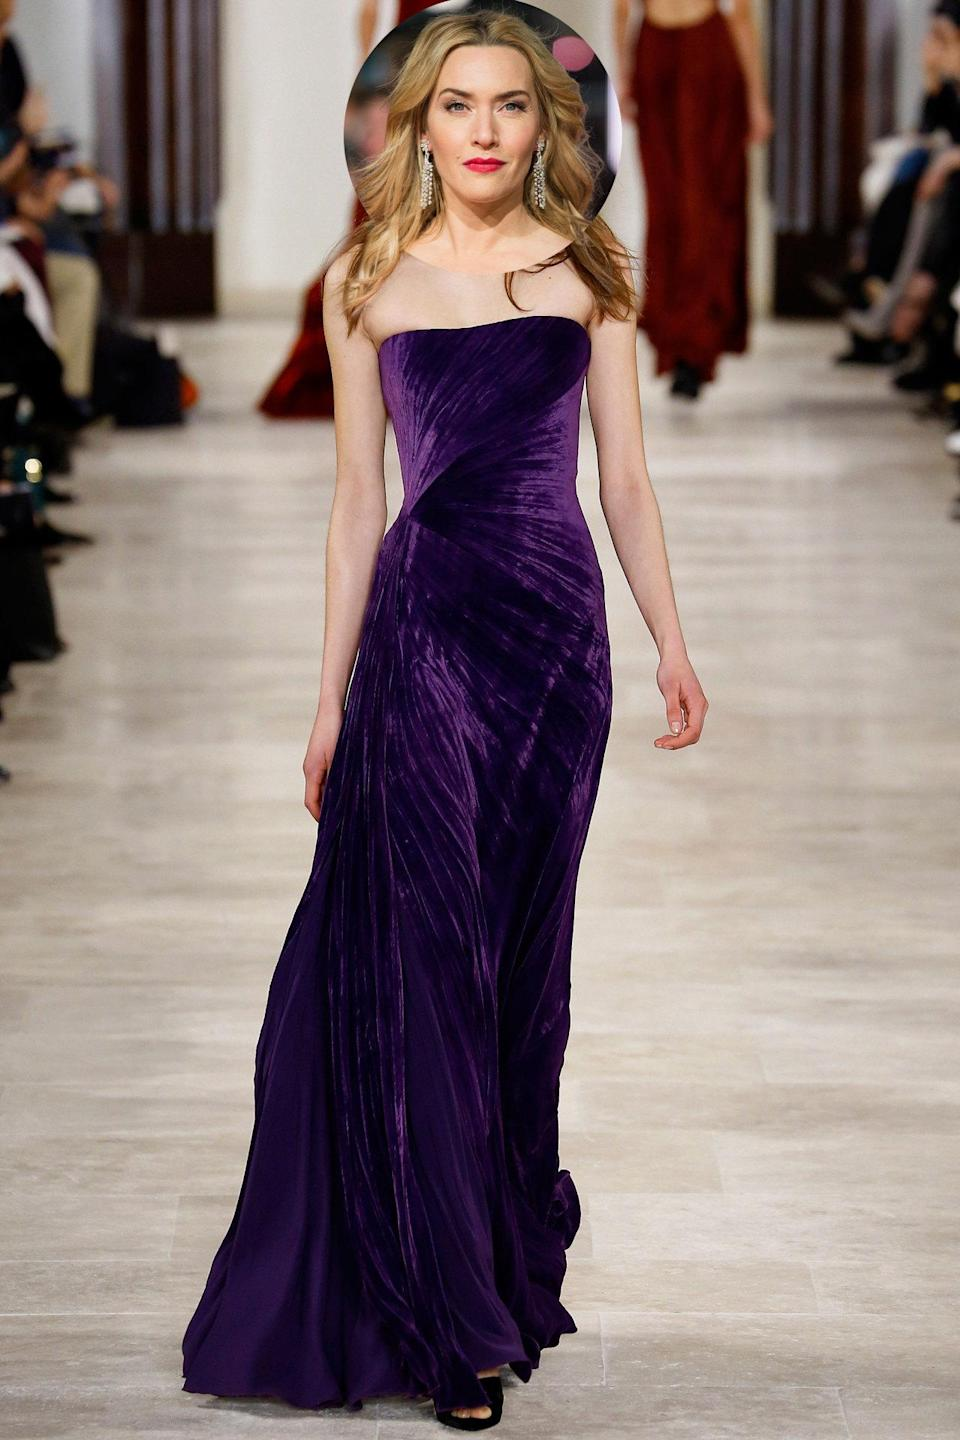 <p>Ms. Winslet loves her jewel tones — and this strapless purple gown from Ralph Lauren's fall 2016 collection practically <i>screams</i> Oscars.</p>